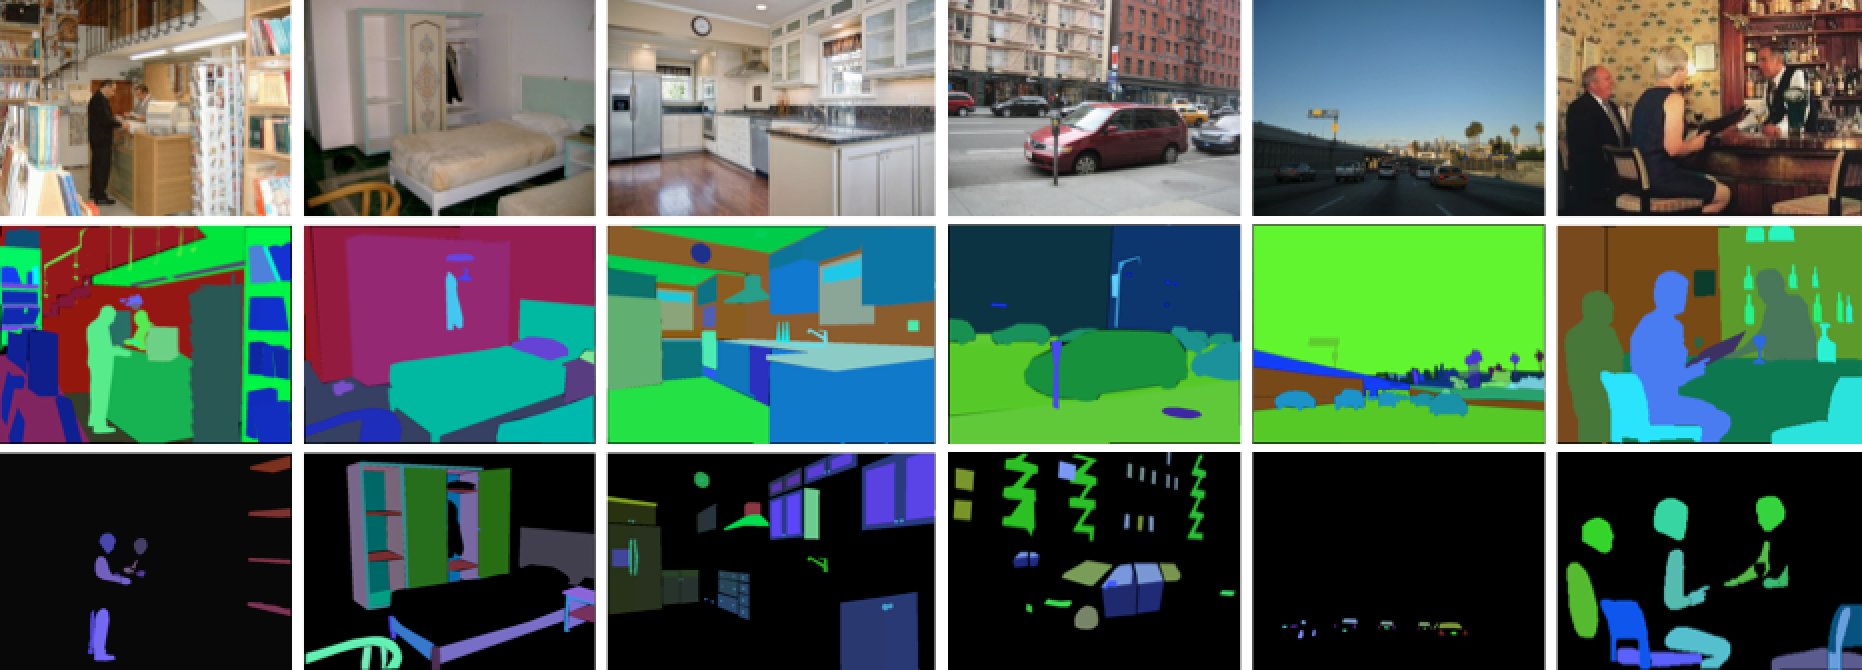 http://groups.csail.mit.edu/vision/datasets/ADE20K/assets/images/examples.png